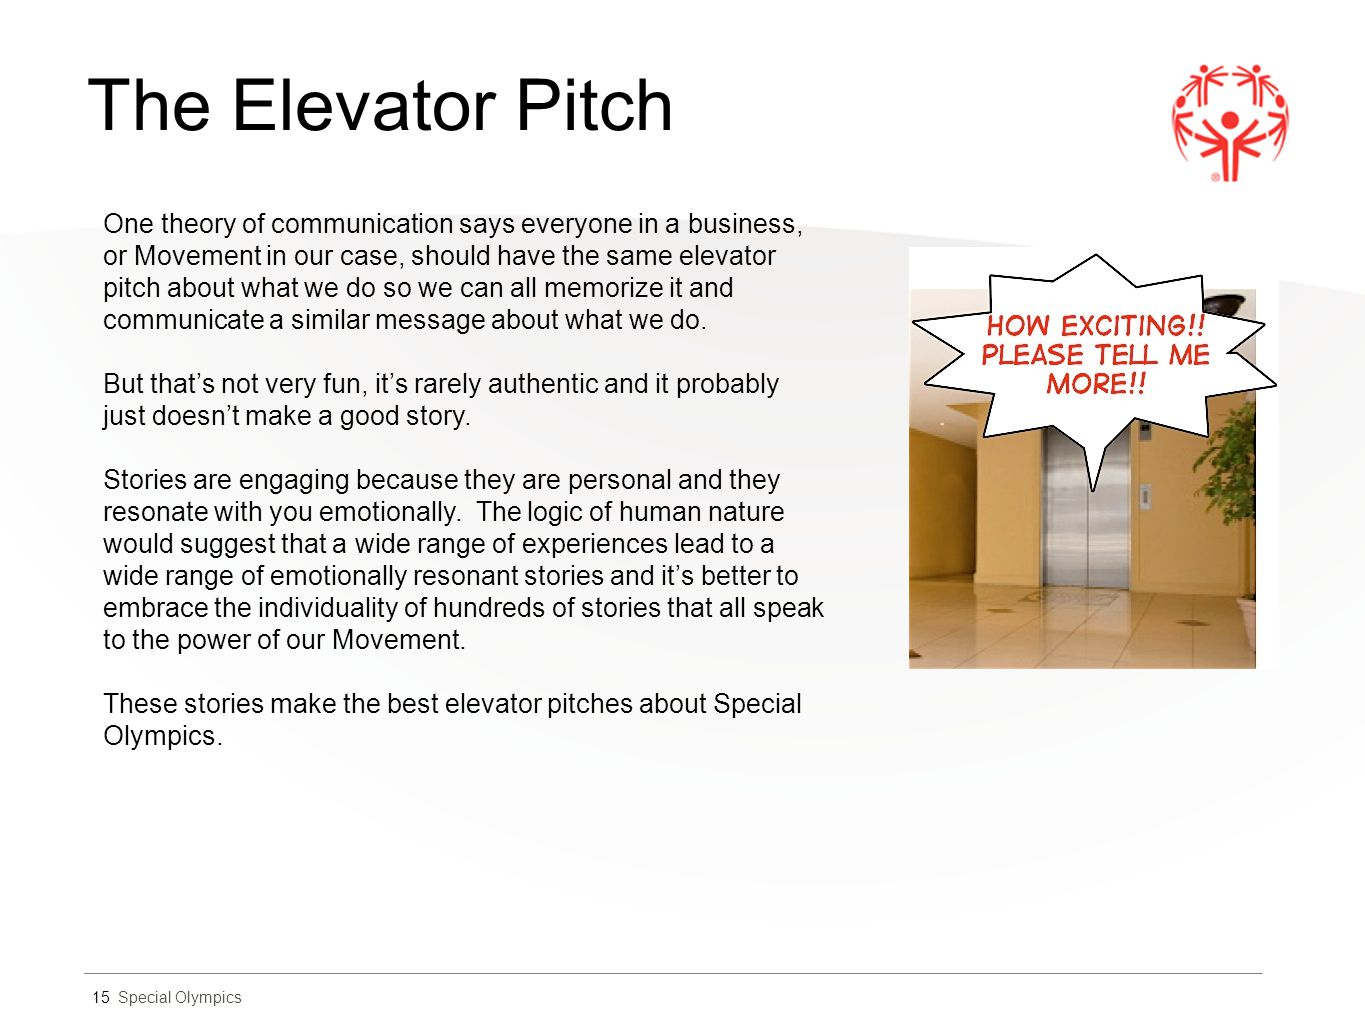 Special Olympics The Elevator Pitch 15 One theory of communication says everyone in a business, or Movement in our case, should have the same elevator pitch about what we do so we can all memorize it and communicate a similar message about what we do.